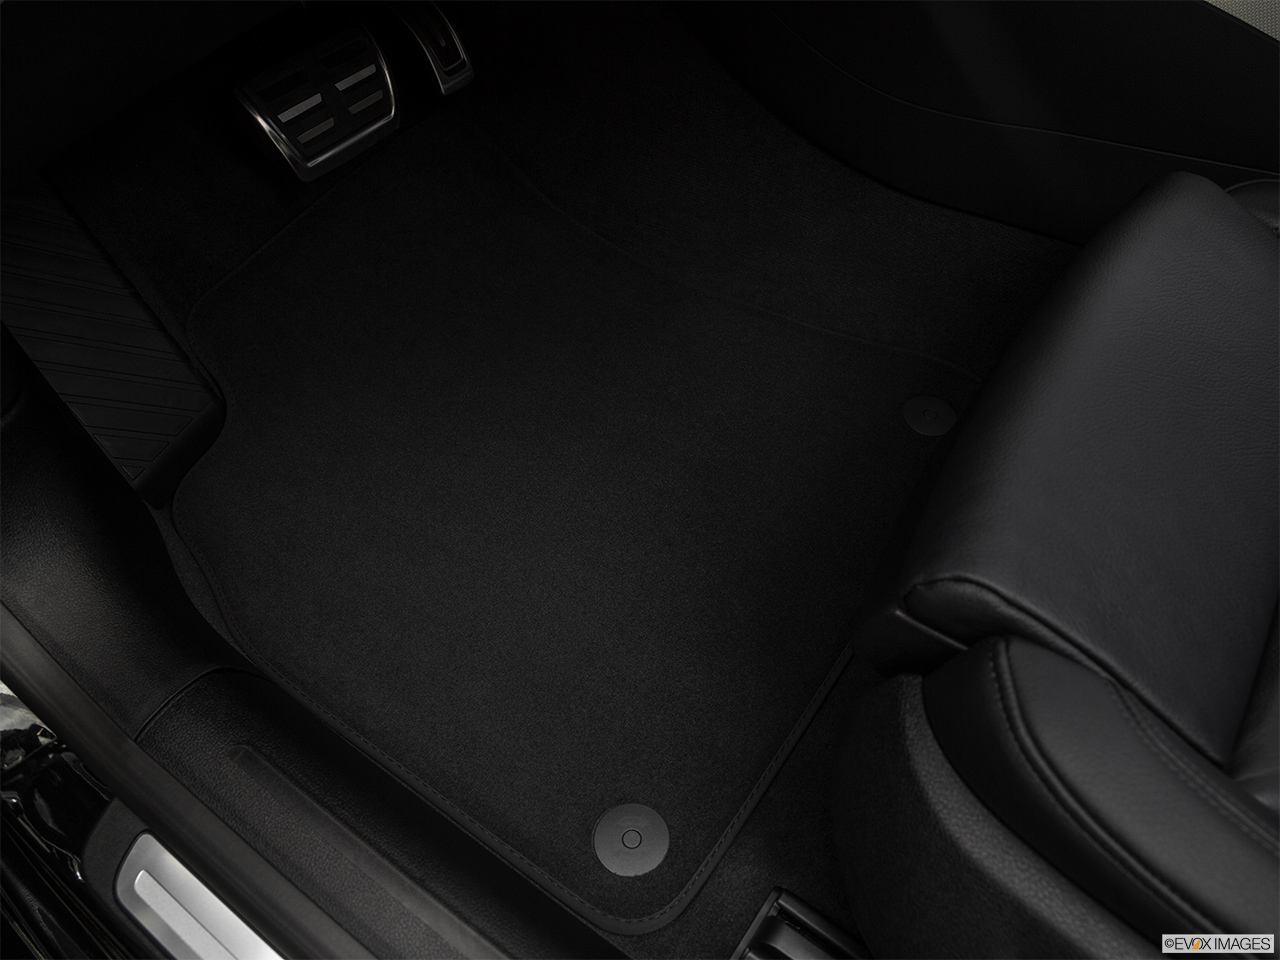 2017 Audi A5 Sport 2.0 TFSI Driver's floor mat and pedals. Mid-seat level from outside looking in.